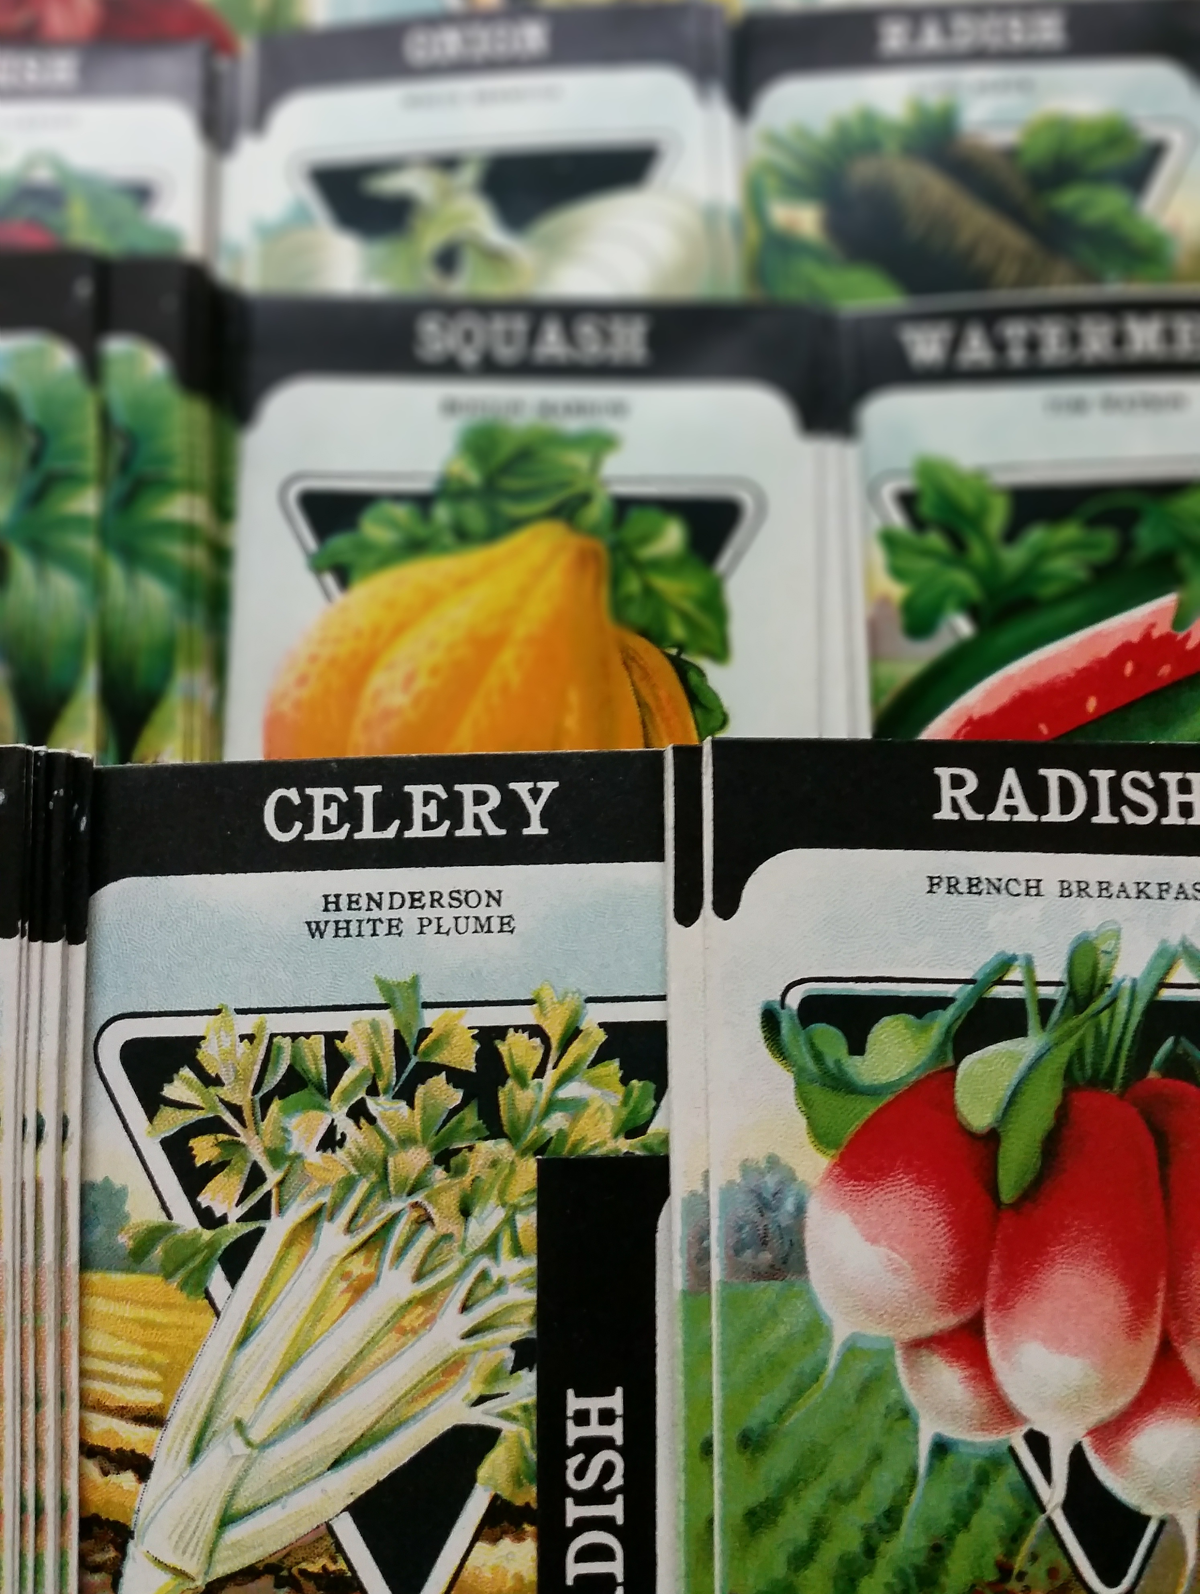 COVID-19 brings changes to garden centers